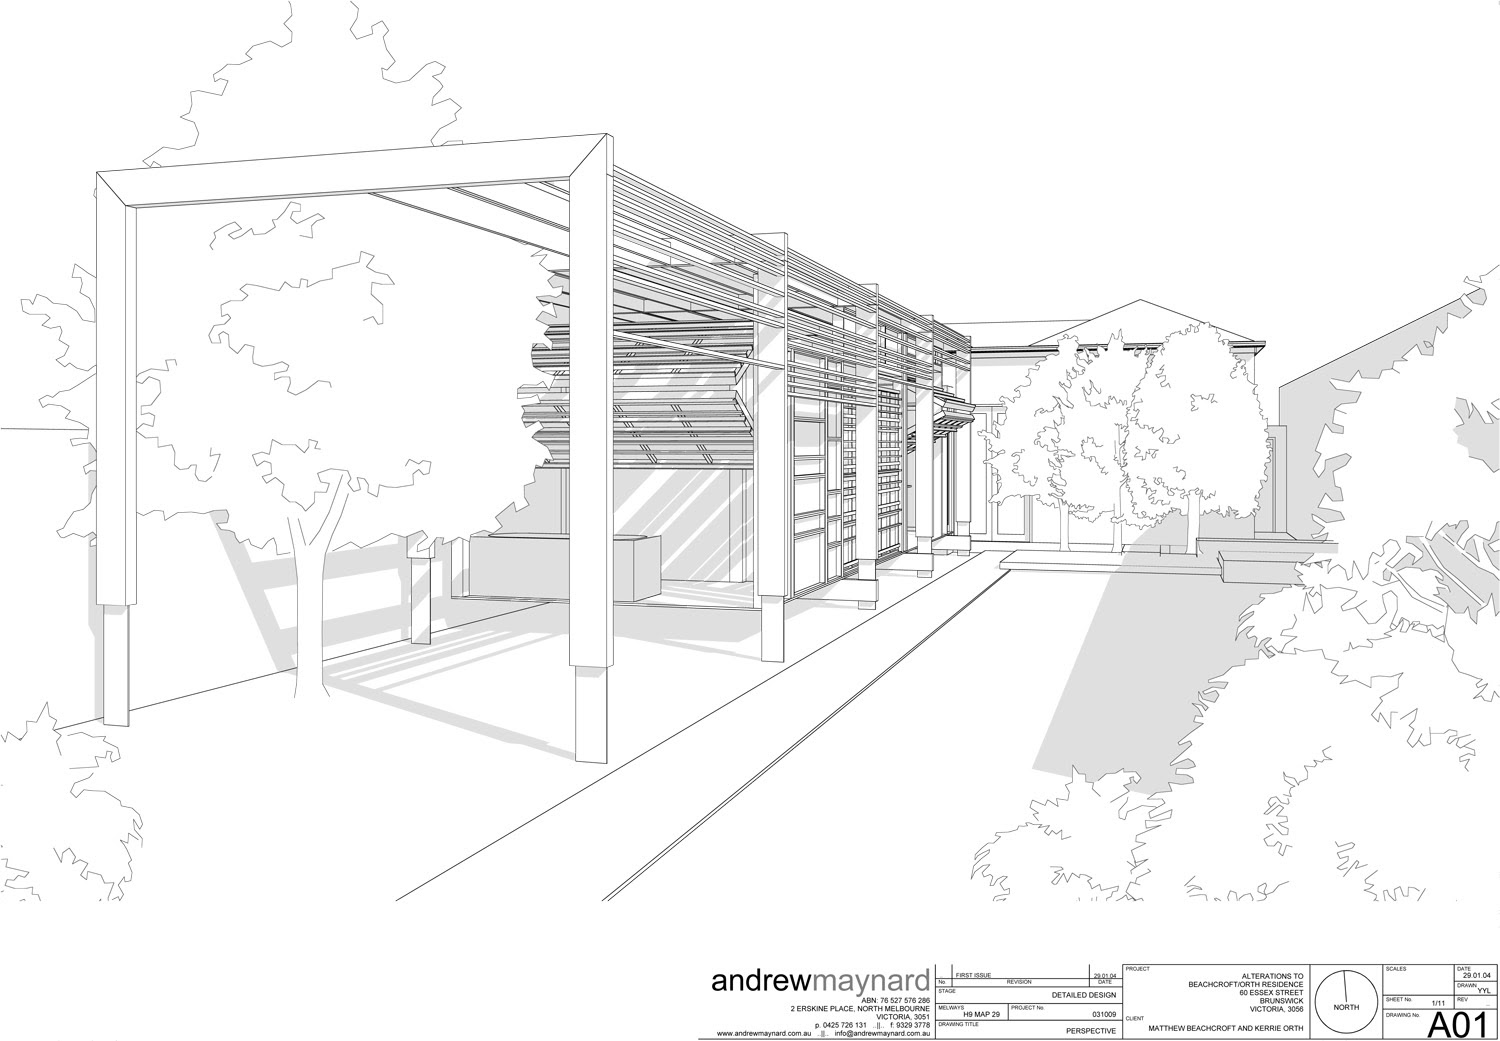 Andrew-Maynard-Architects, Architecture, Design, House, Interiors